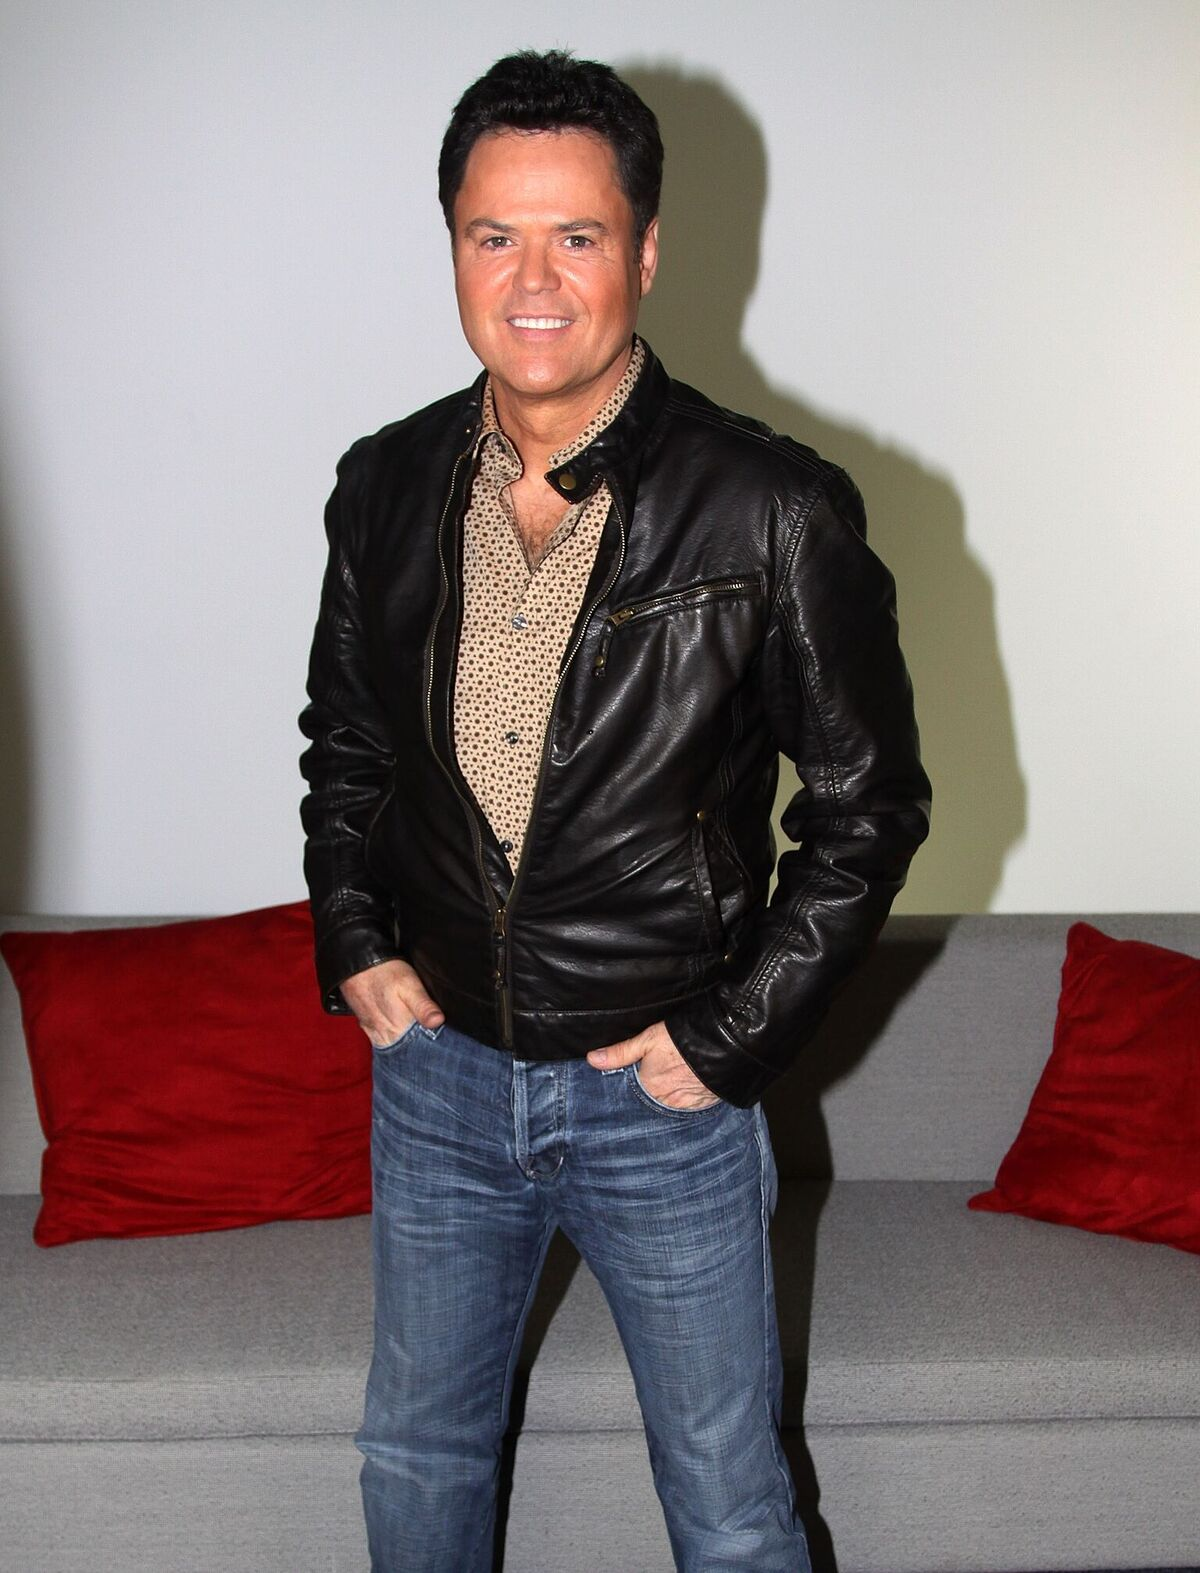 """Donny Osmond poses as he promotes """"A Broadway Christmas"""" as he visits Broadway.com at The Broadway.com Studios on December 8, 2010 in New York City 